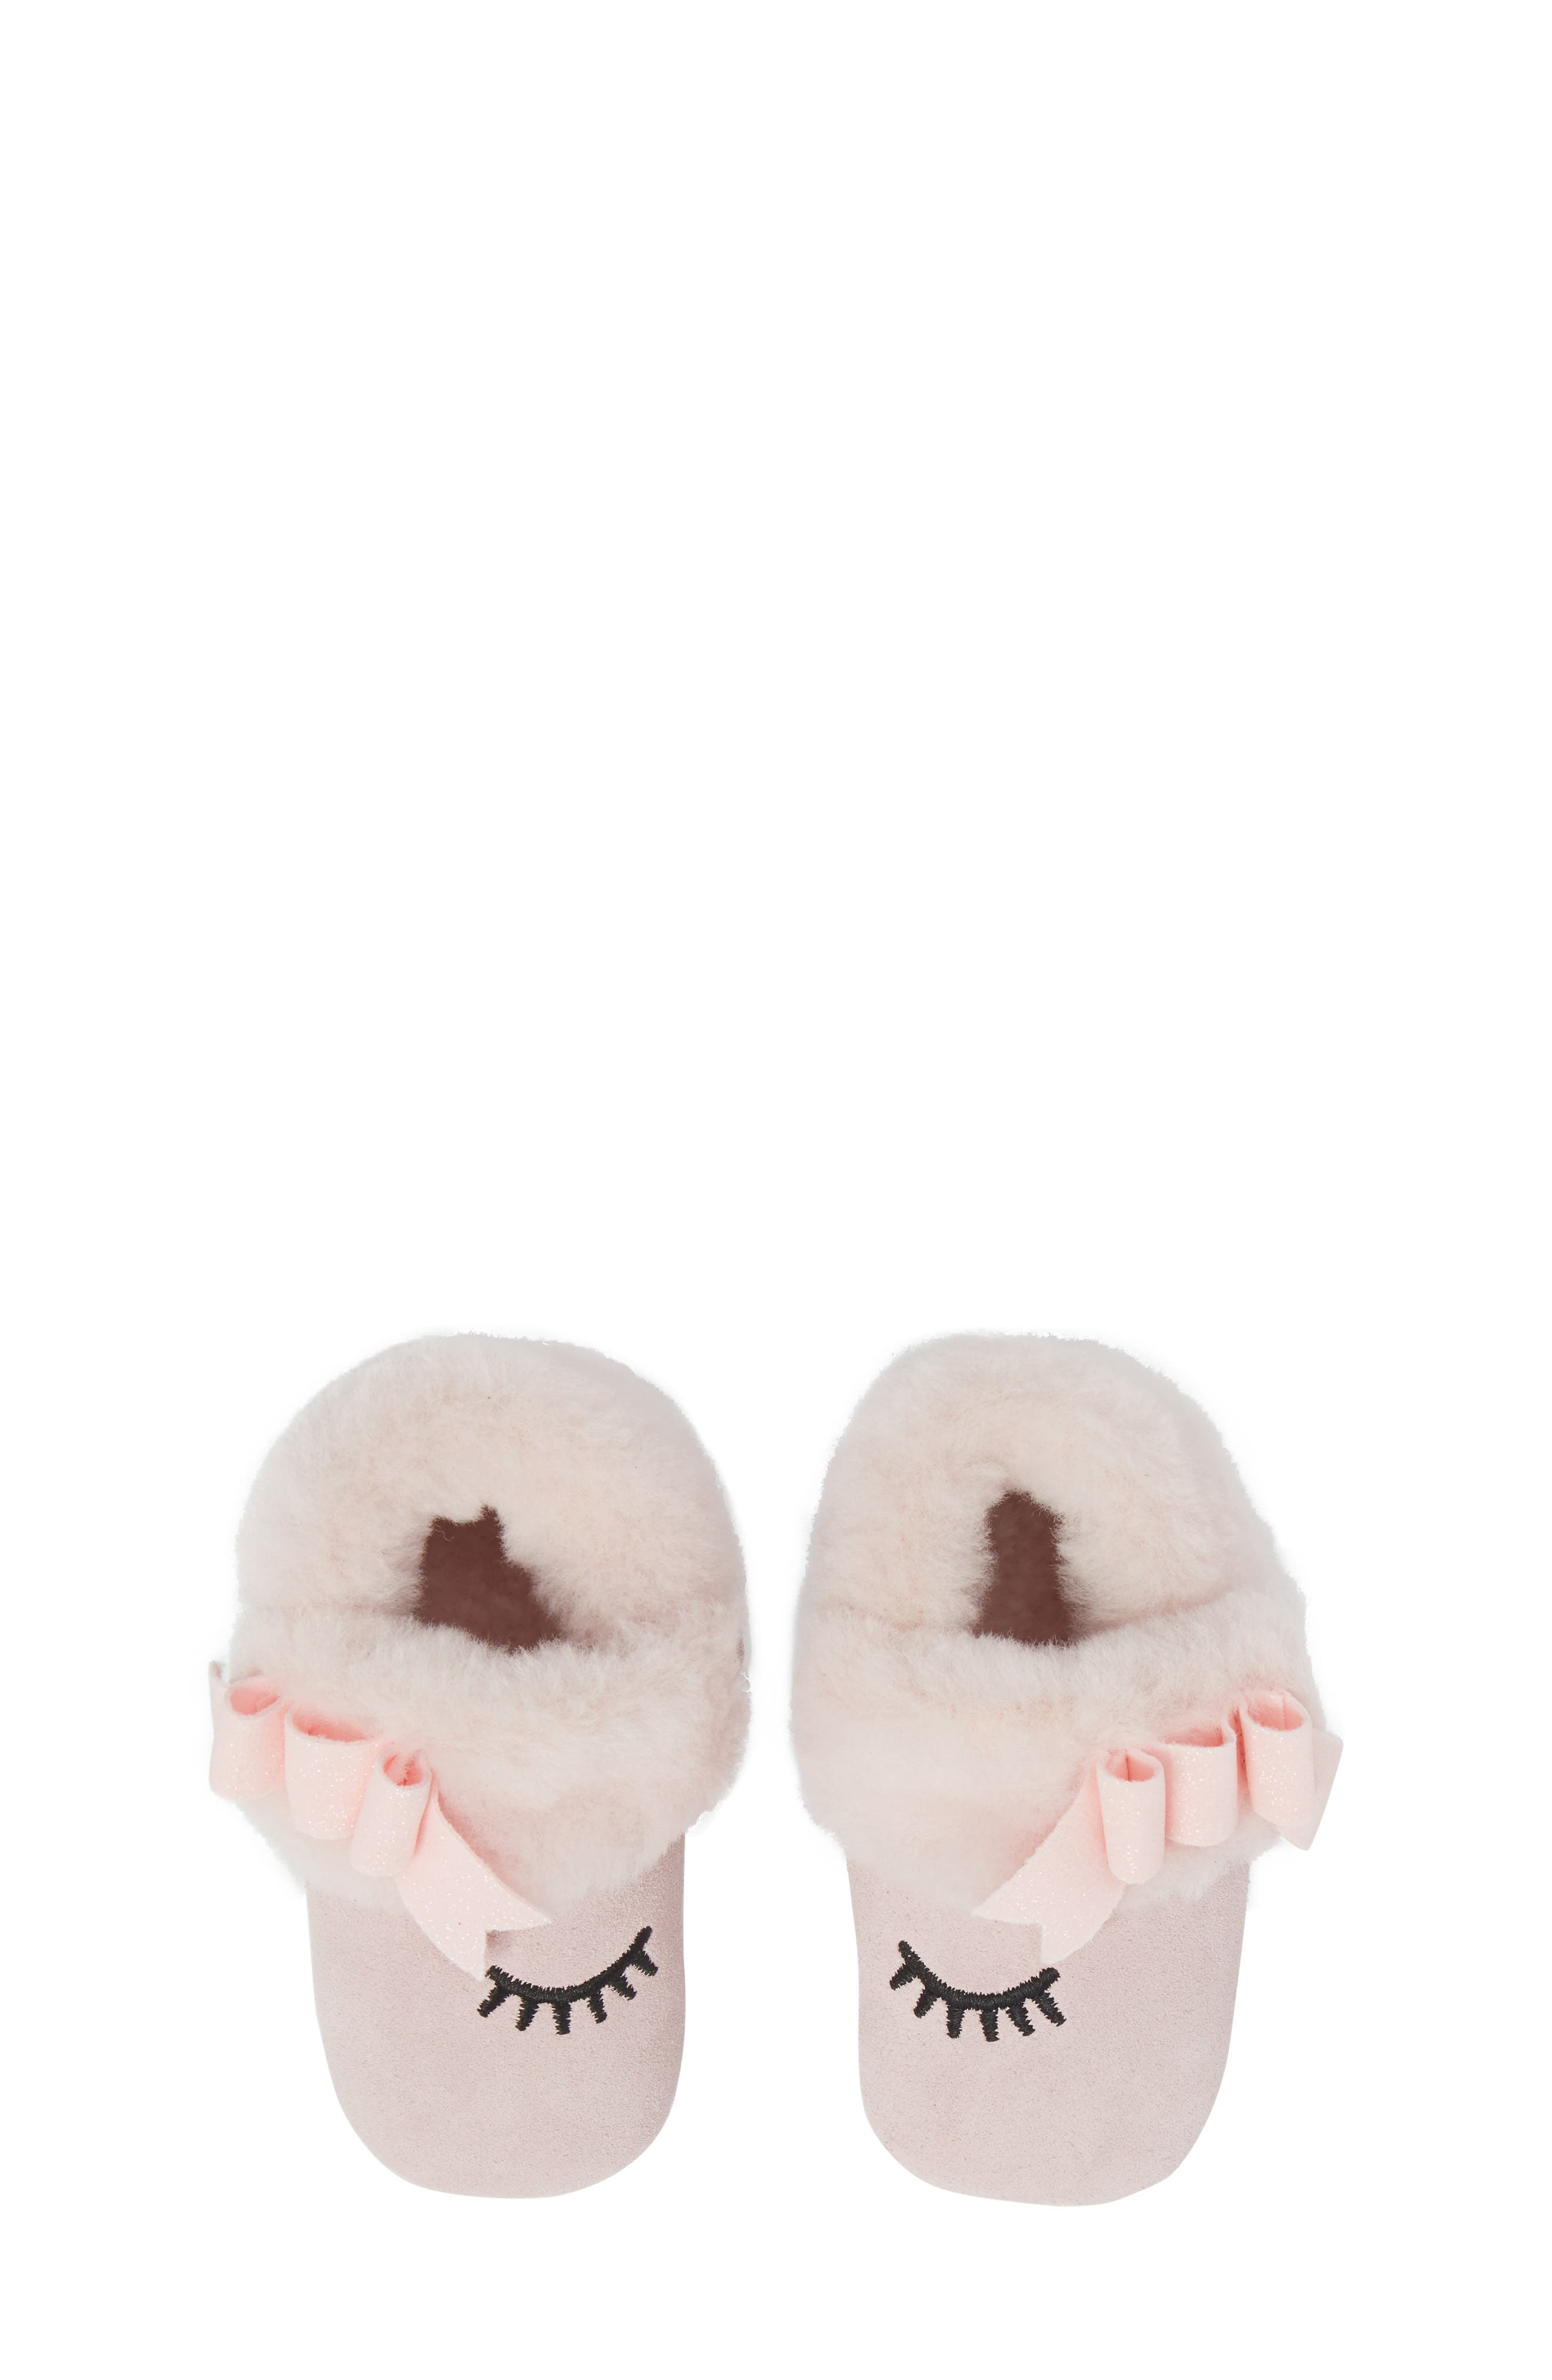 Blinxie Genuine Shearling Bootie,                             Main thumbnail 1, color,                             Seashell Pink